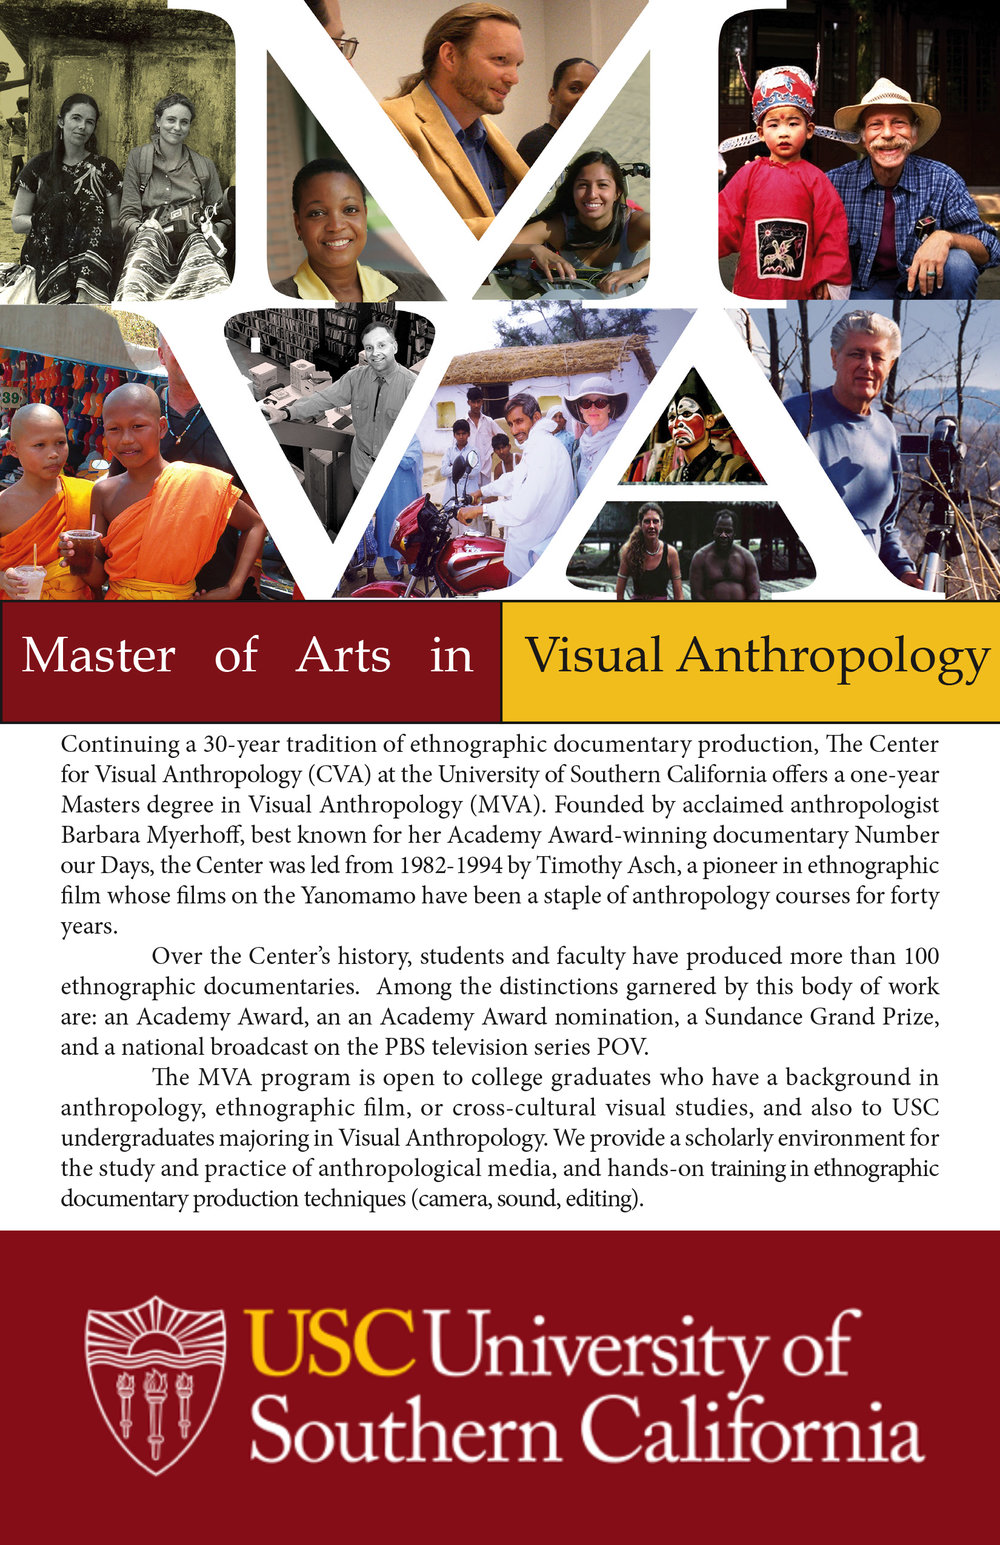 USC MVA program flier